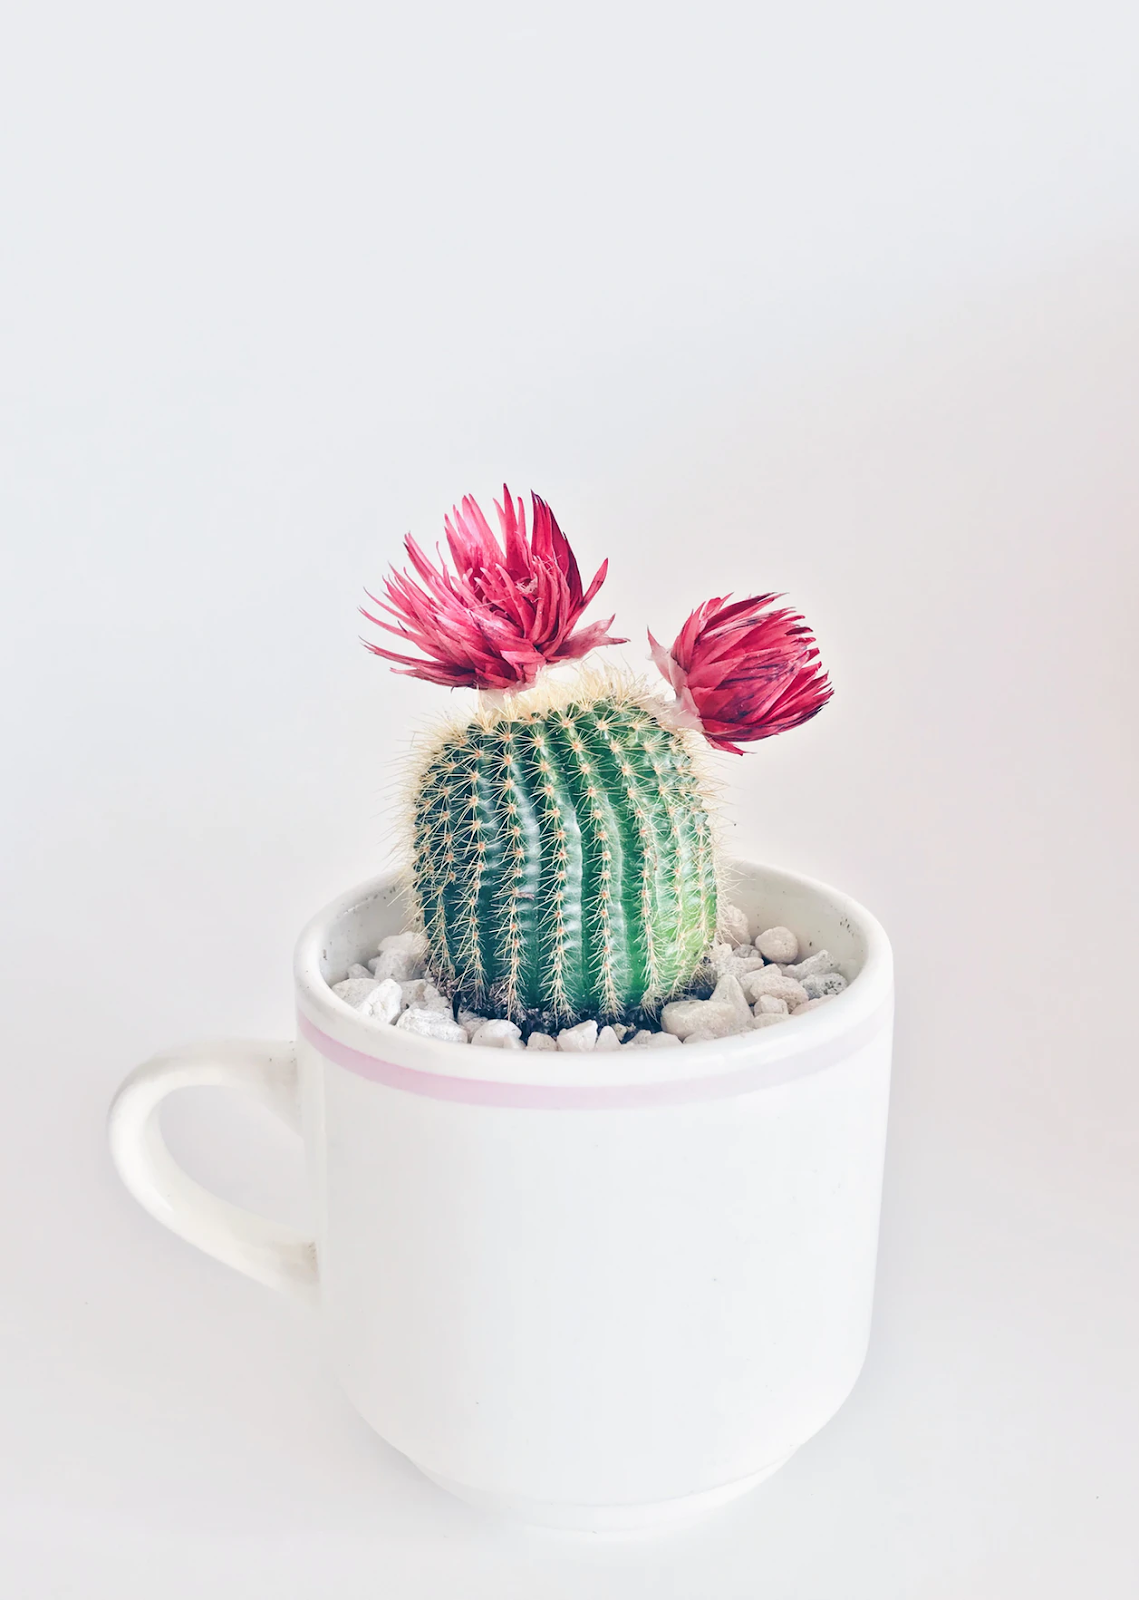 Blooming cactus in a mug